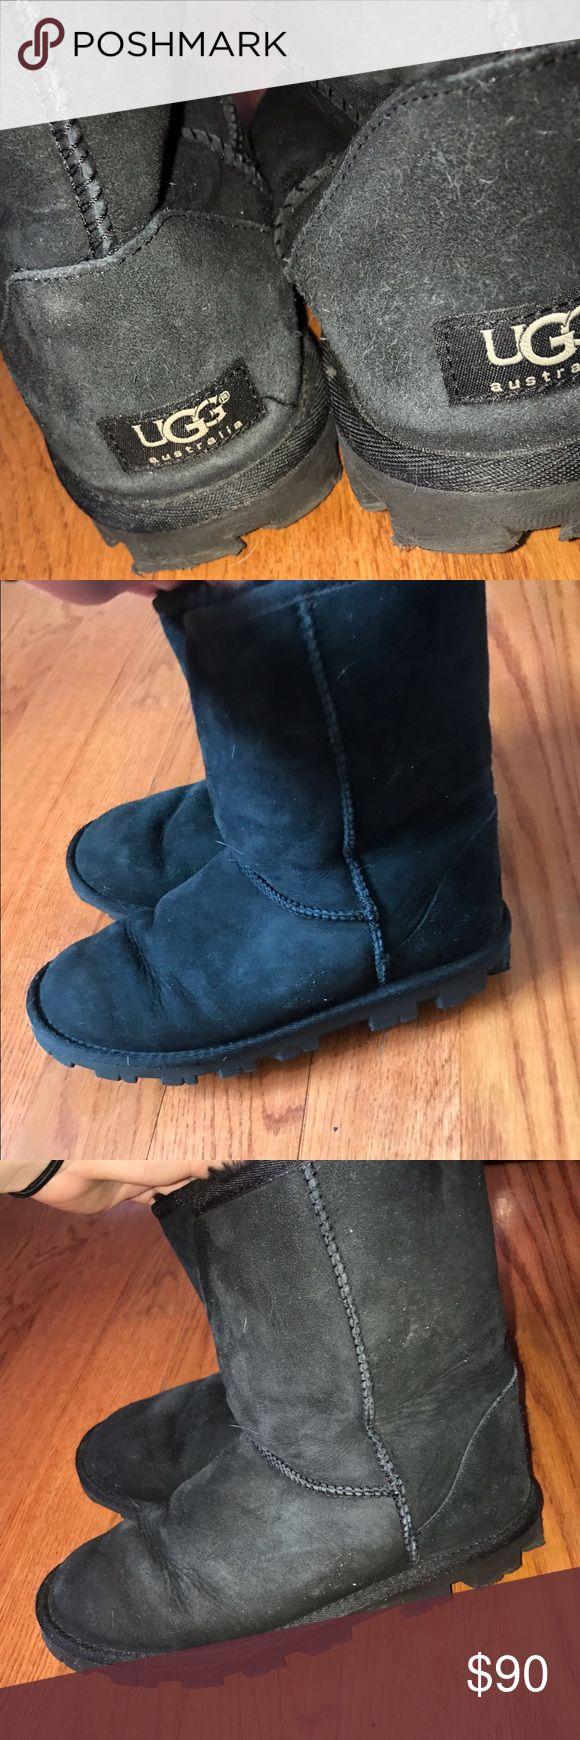 Black Short UGGS Black short UGGS, lightly worn with creasing, i accept offers! UGG Shoes Winter & Rain Boots